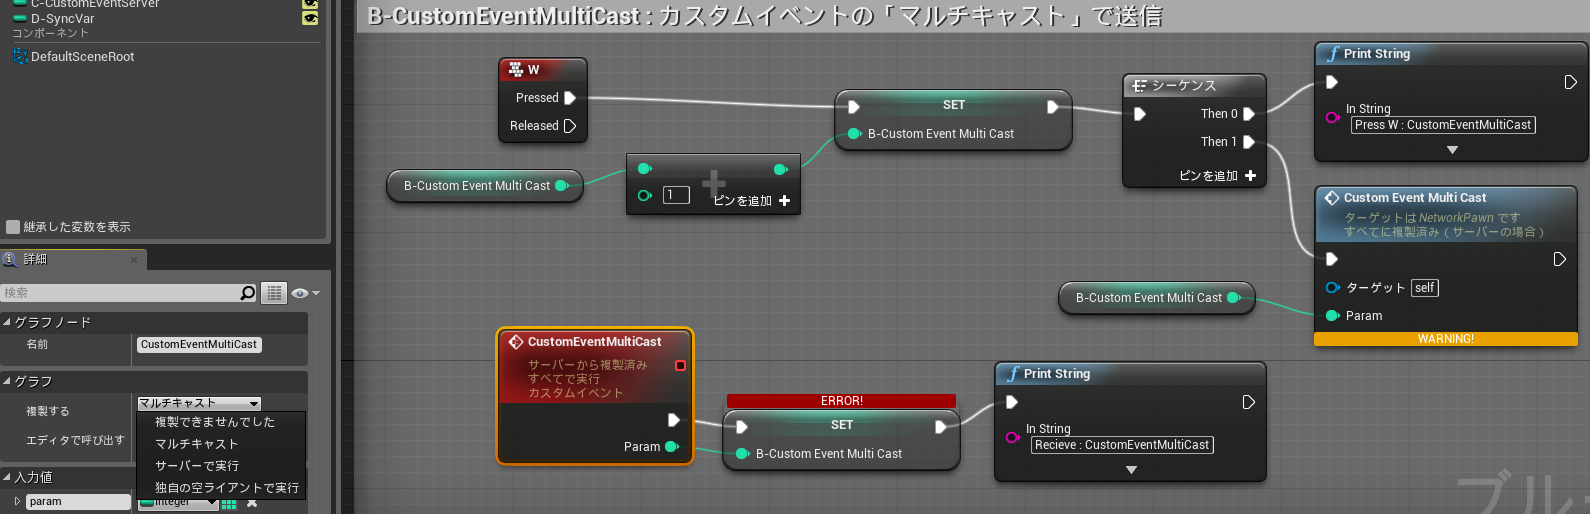 ue4-network-sync04.png